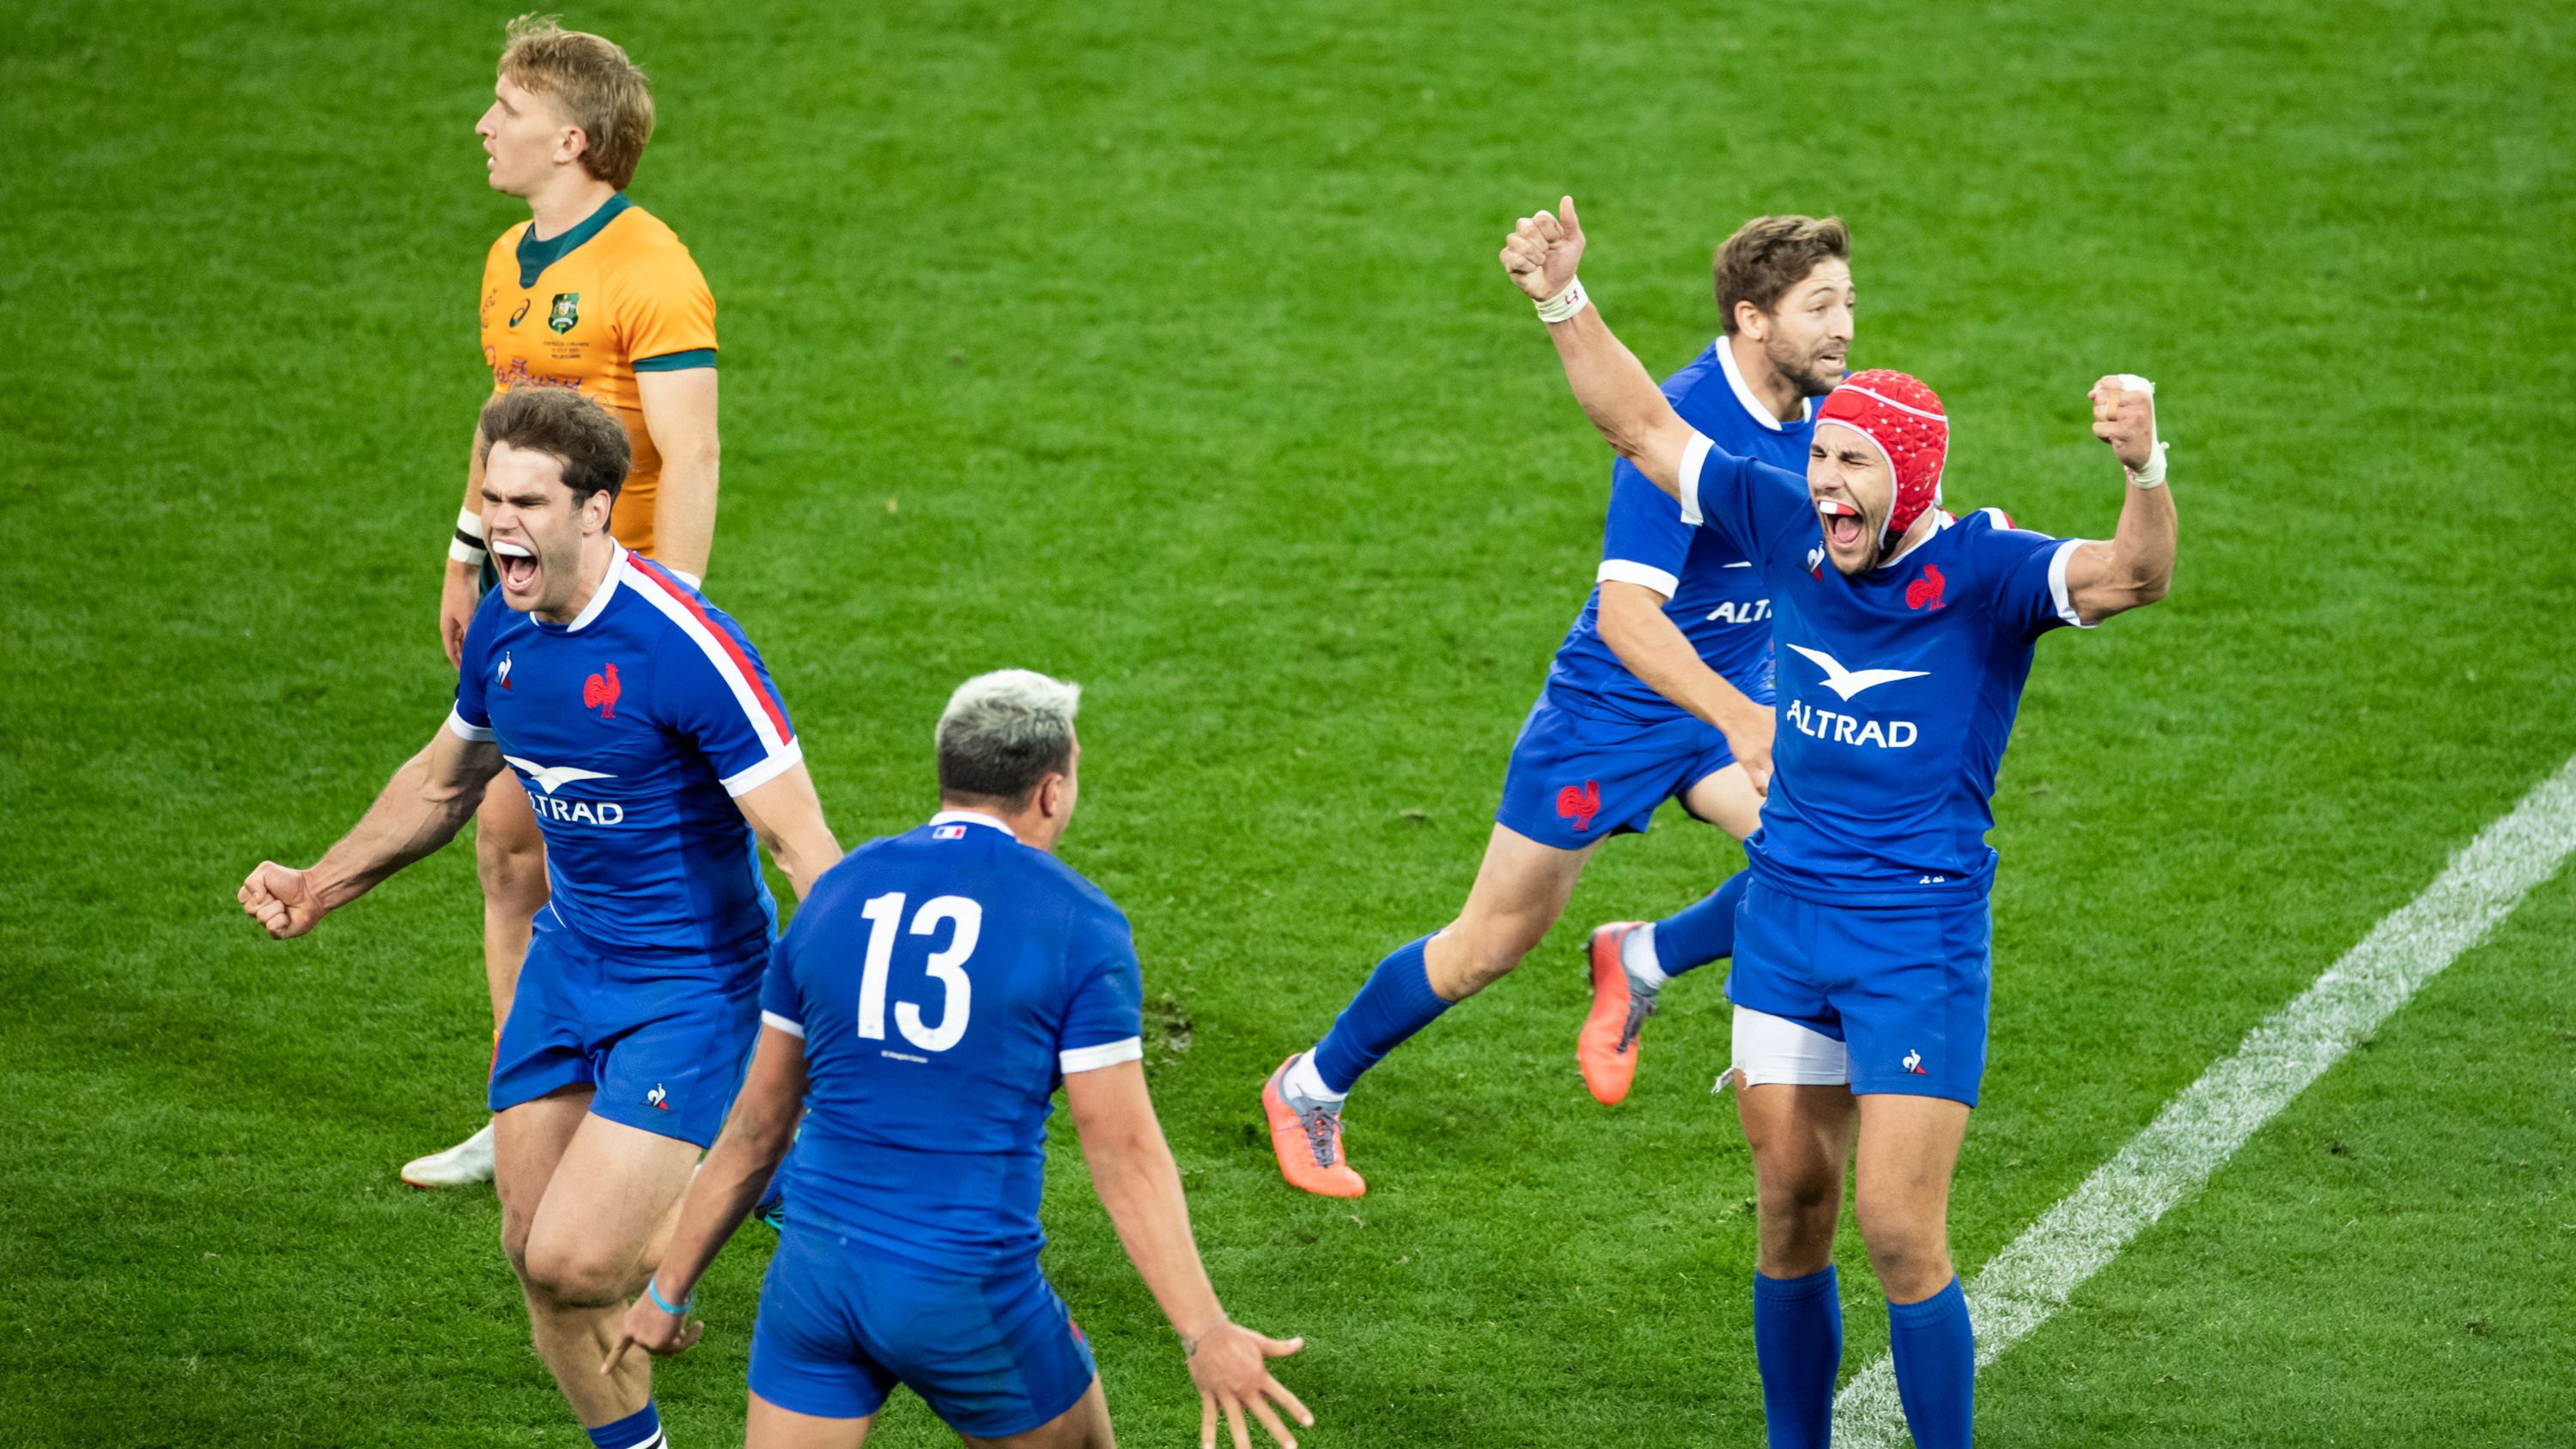 Wallabies forced to join France's victory party